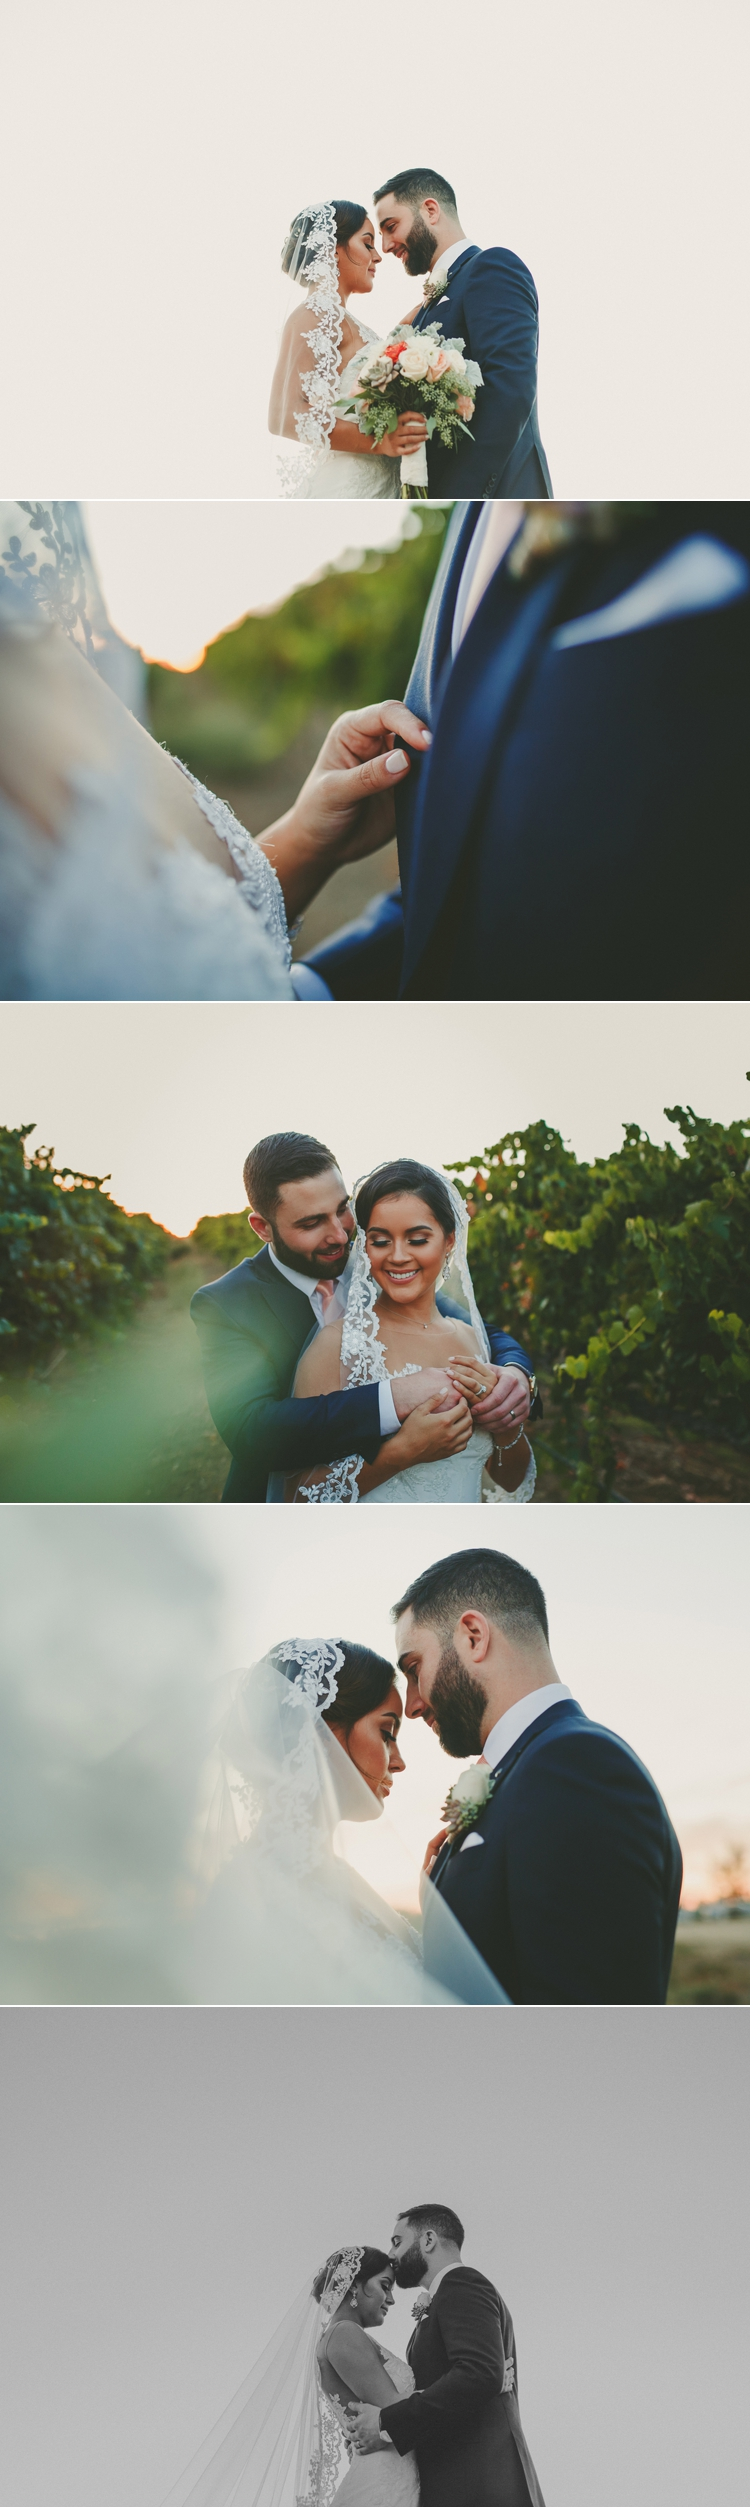 europa-village-winery-wedding-13